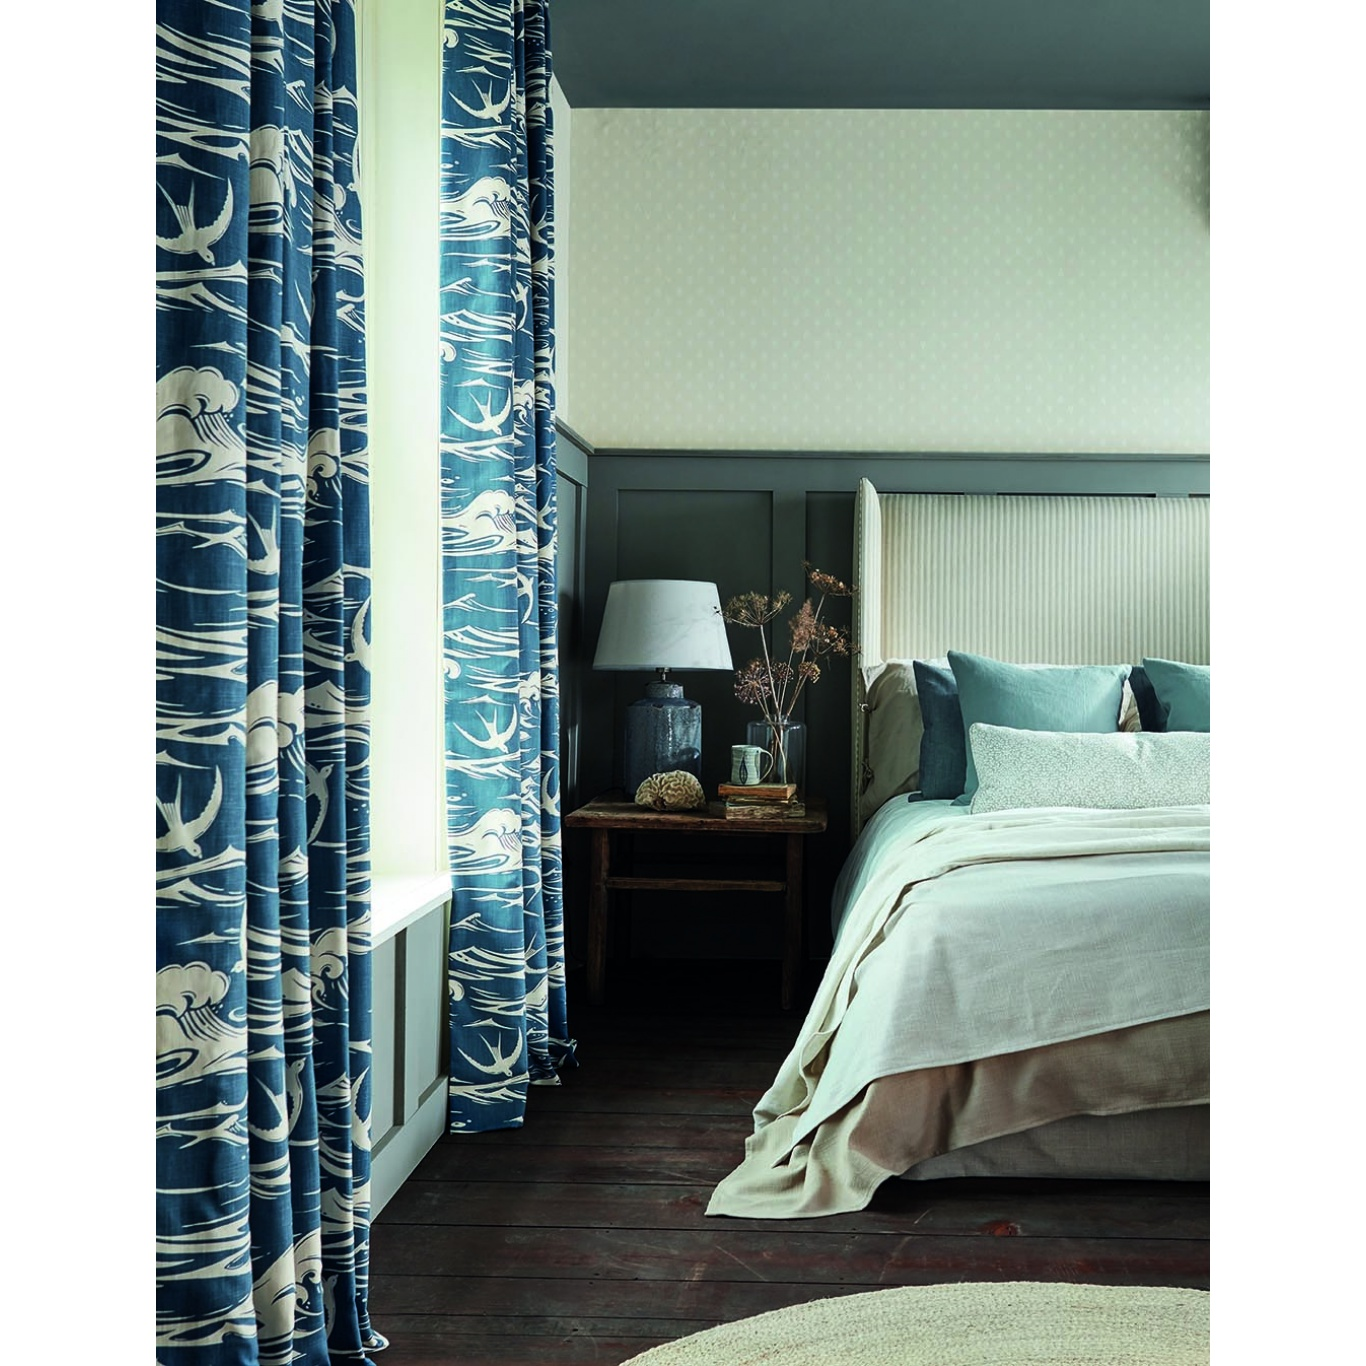 Sanderson Swallows at Sea Linen Fabric 226742